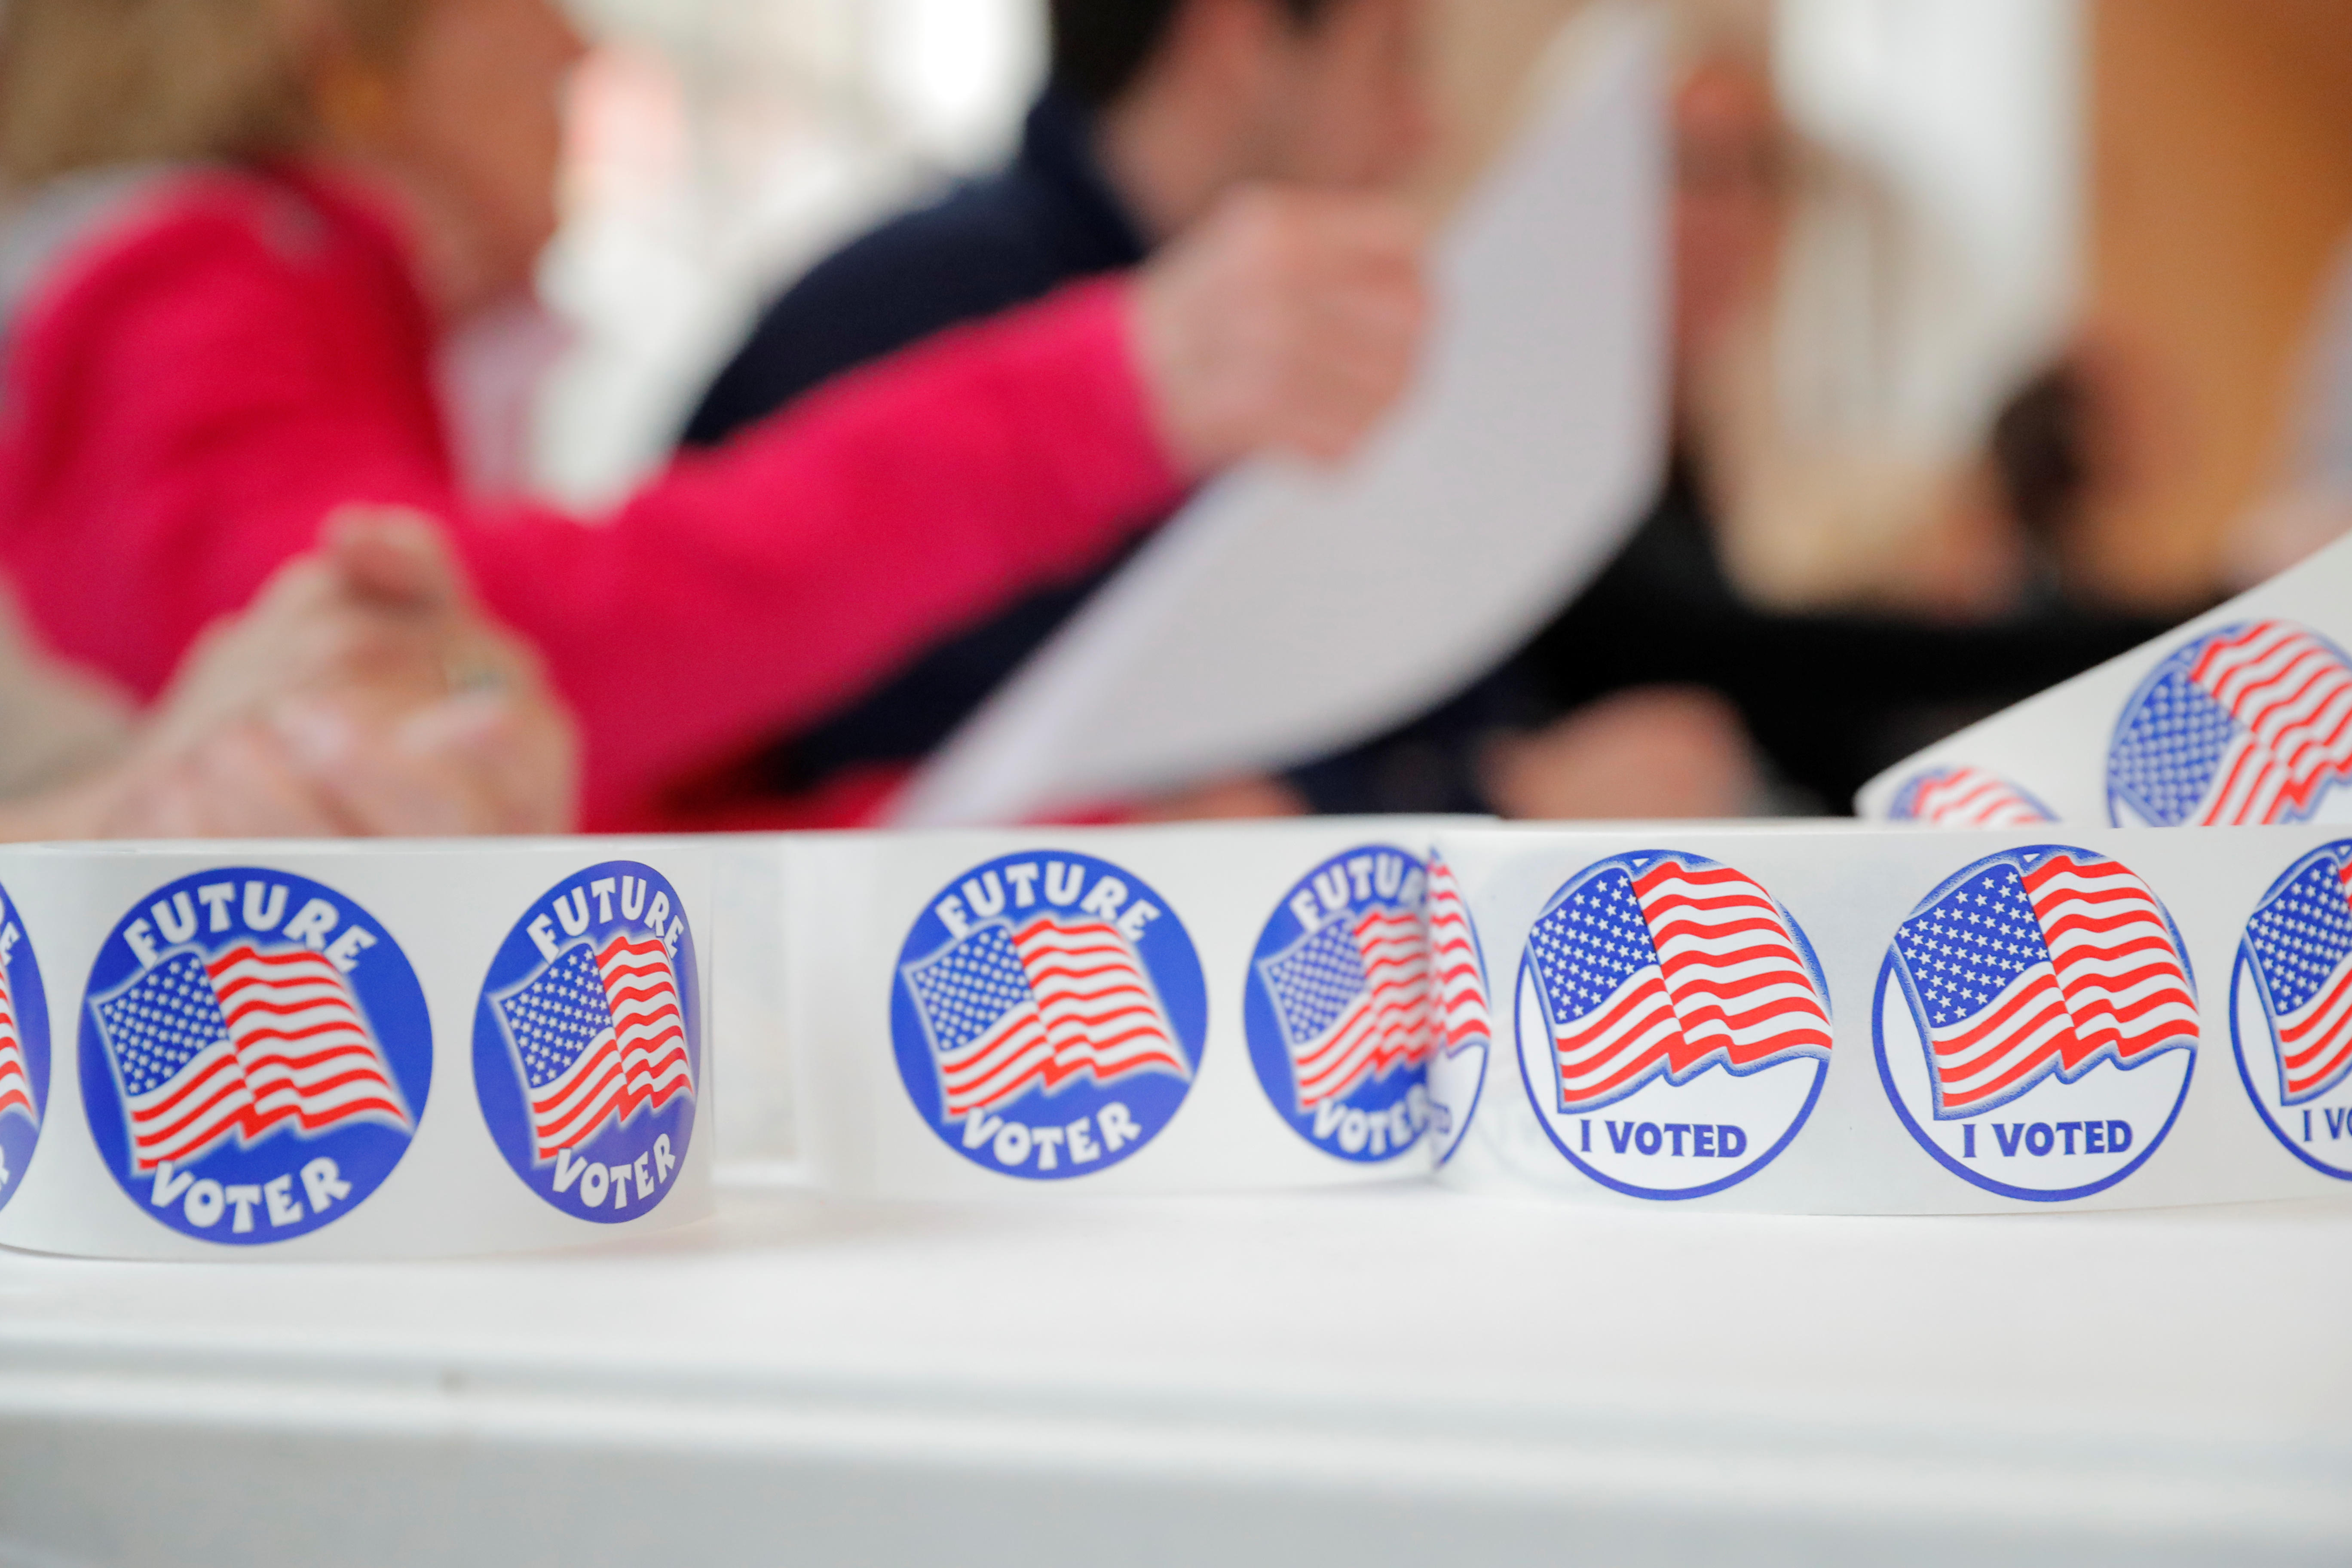 Record voter turnout in 2018 midterm elections - CBS News